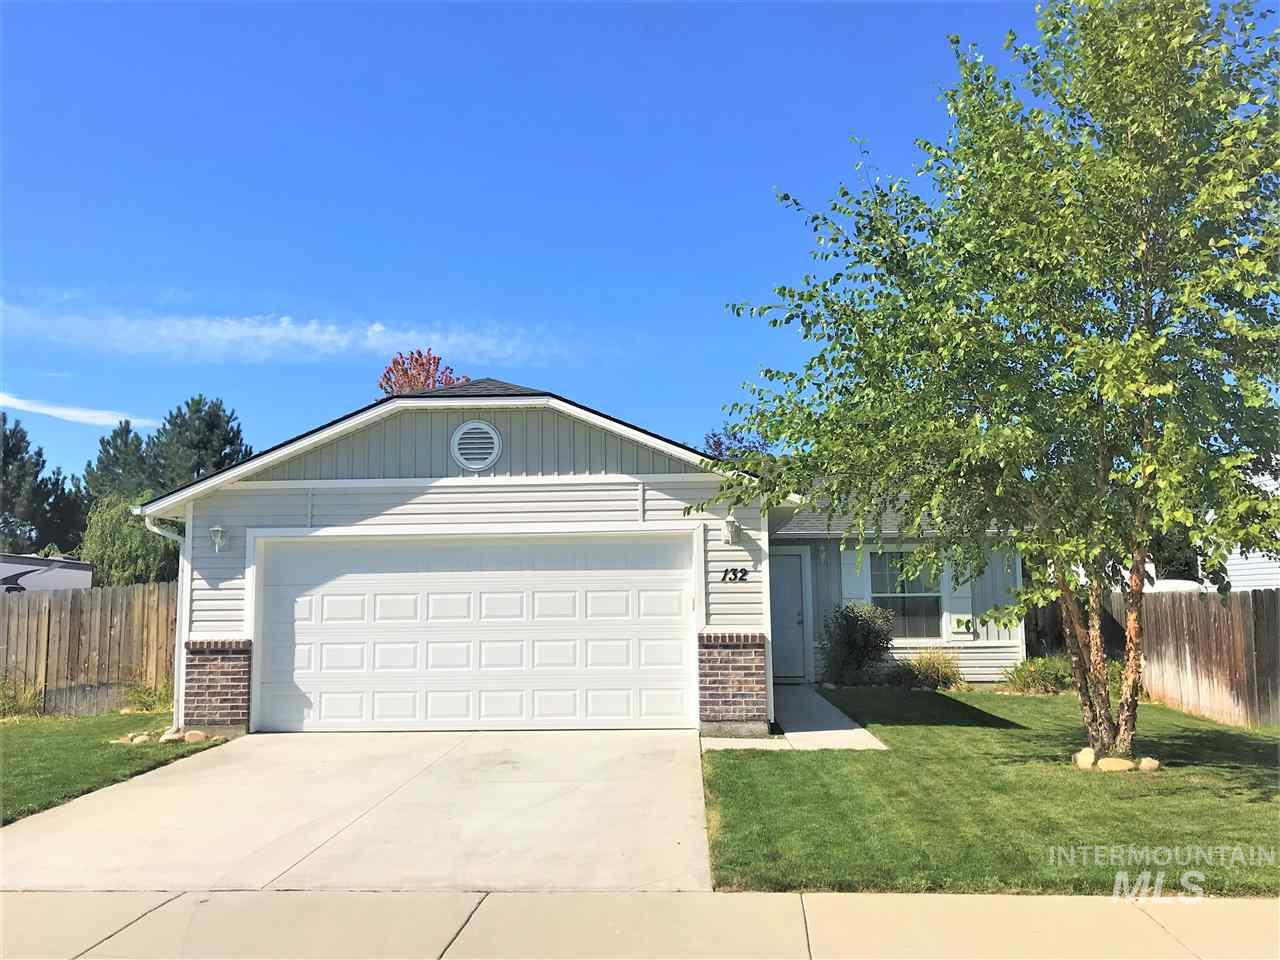 Great Home at a Great Price! This adorable 3 bedroom home offers an upgraded kitchen with an awesome gas stove. Large back yard with nice garden spot and a fruit tree. No back neighbors. The RV parking to the side of home is a great plus!! Come take a peak. You will be glad you looked!!